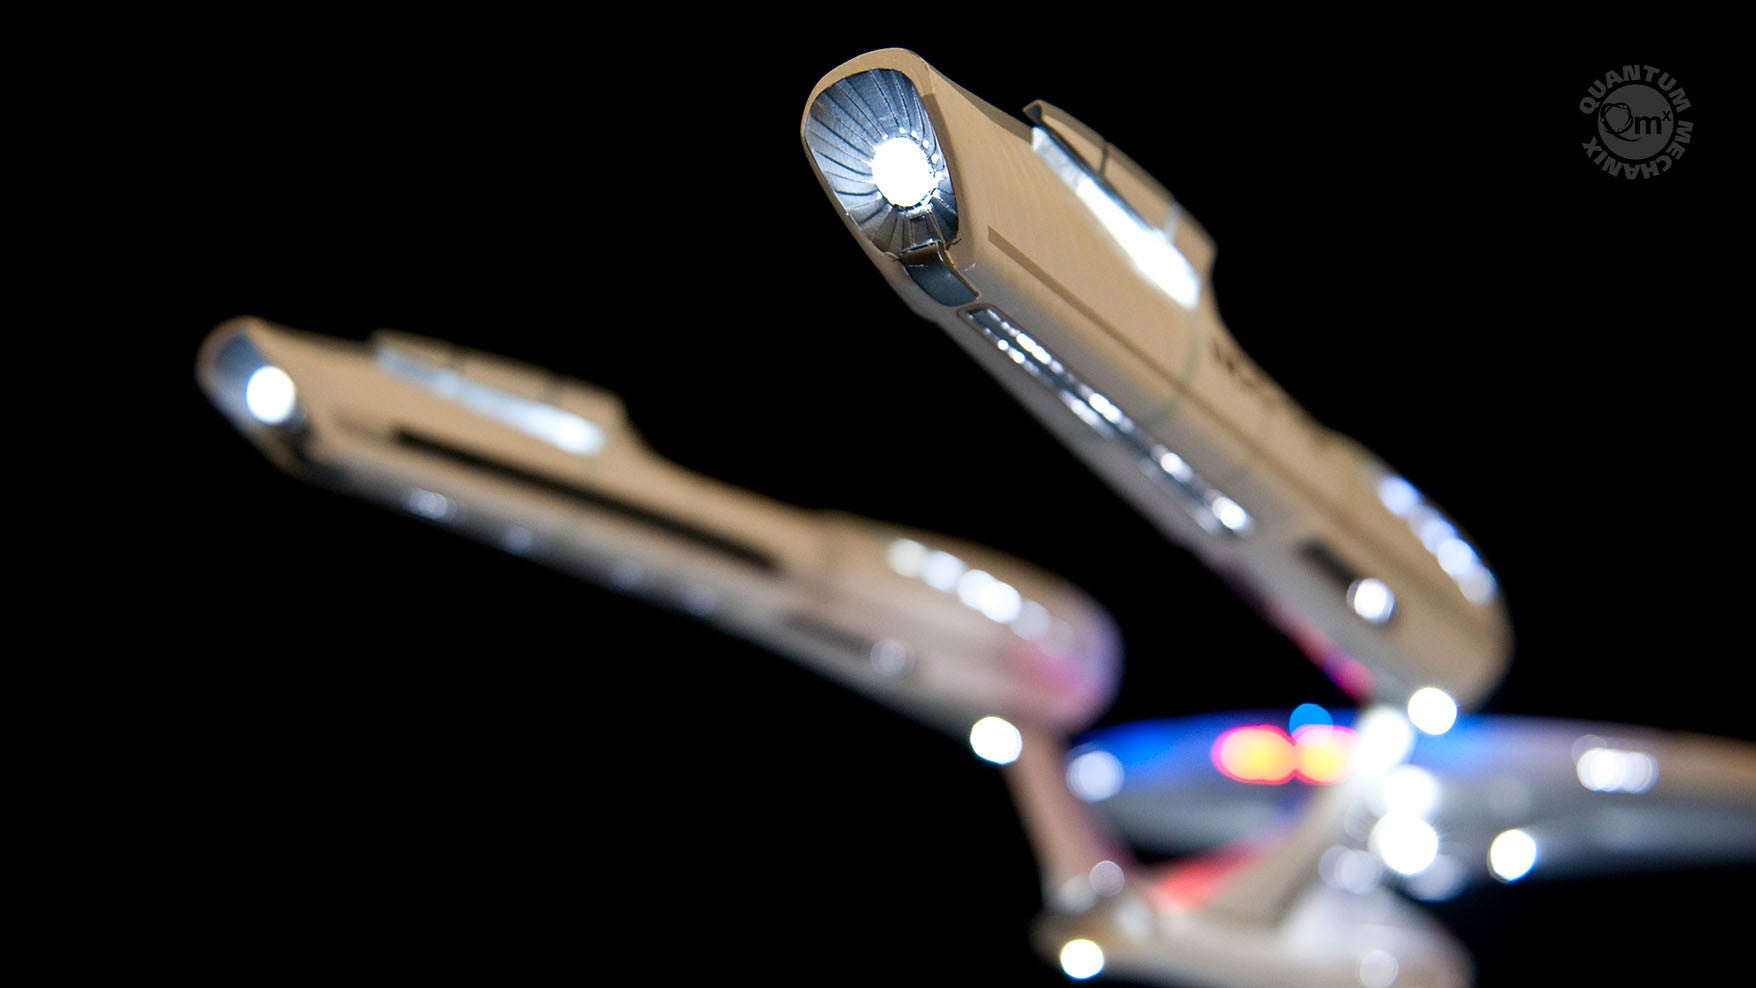 Try Not to Drool Over This Exquisite $US7,000 ($9,716) Replica of the USS Enterprise